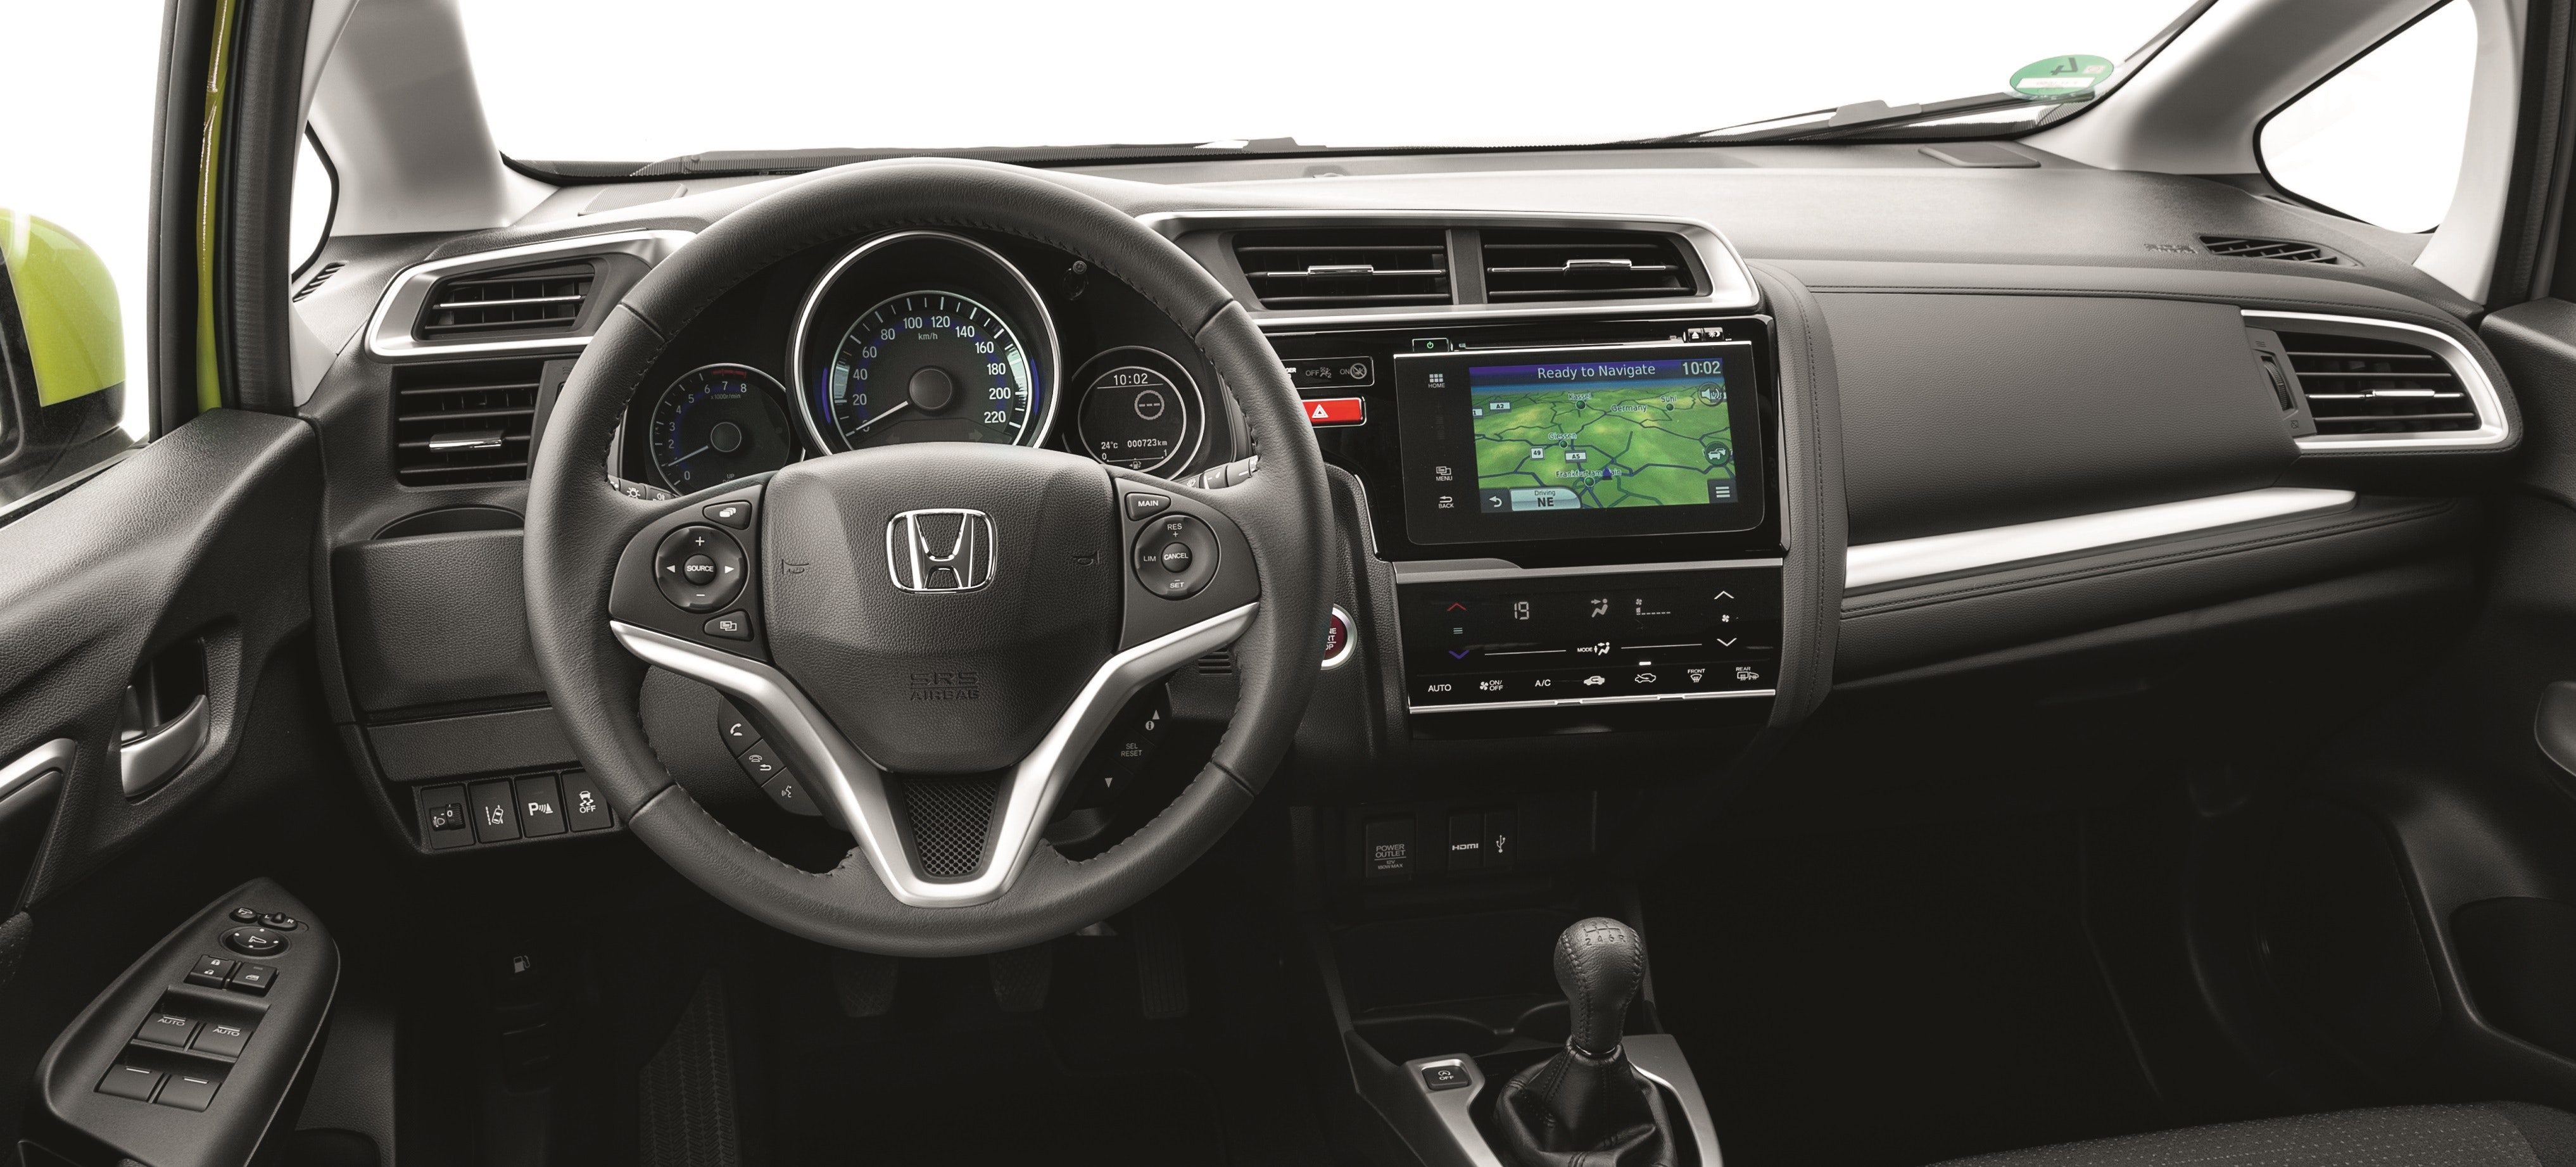 If Space Is A Priority For Your Next Supermini, Thereu0027s Little Point  Considering Anything Other Than The Jazz. Honda Reckons That Interior  Legroom (which In ...